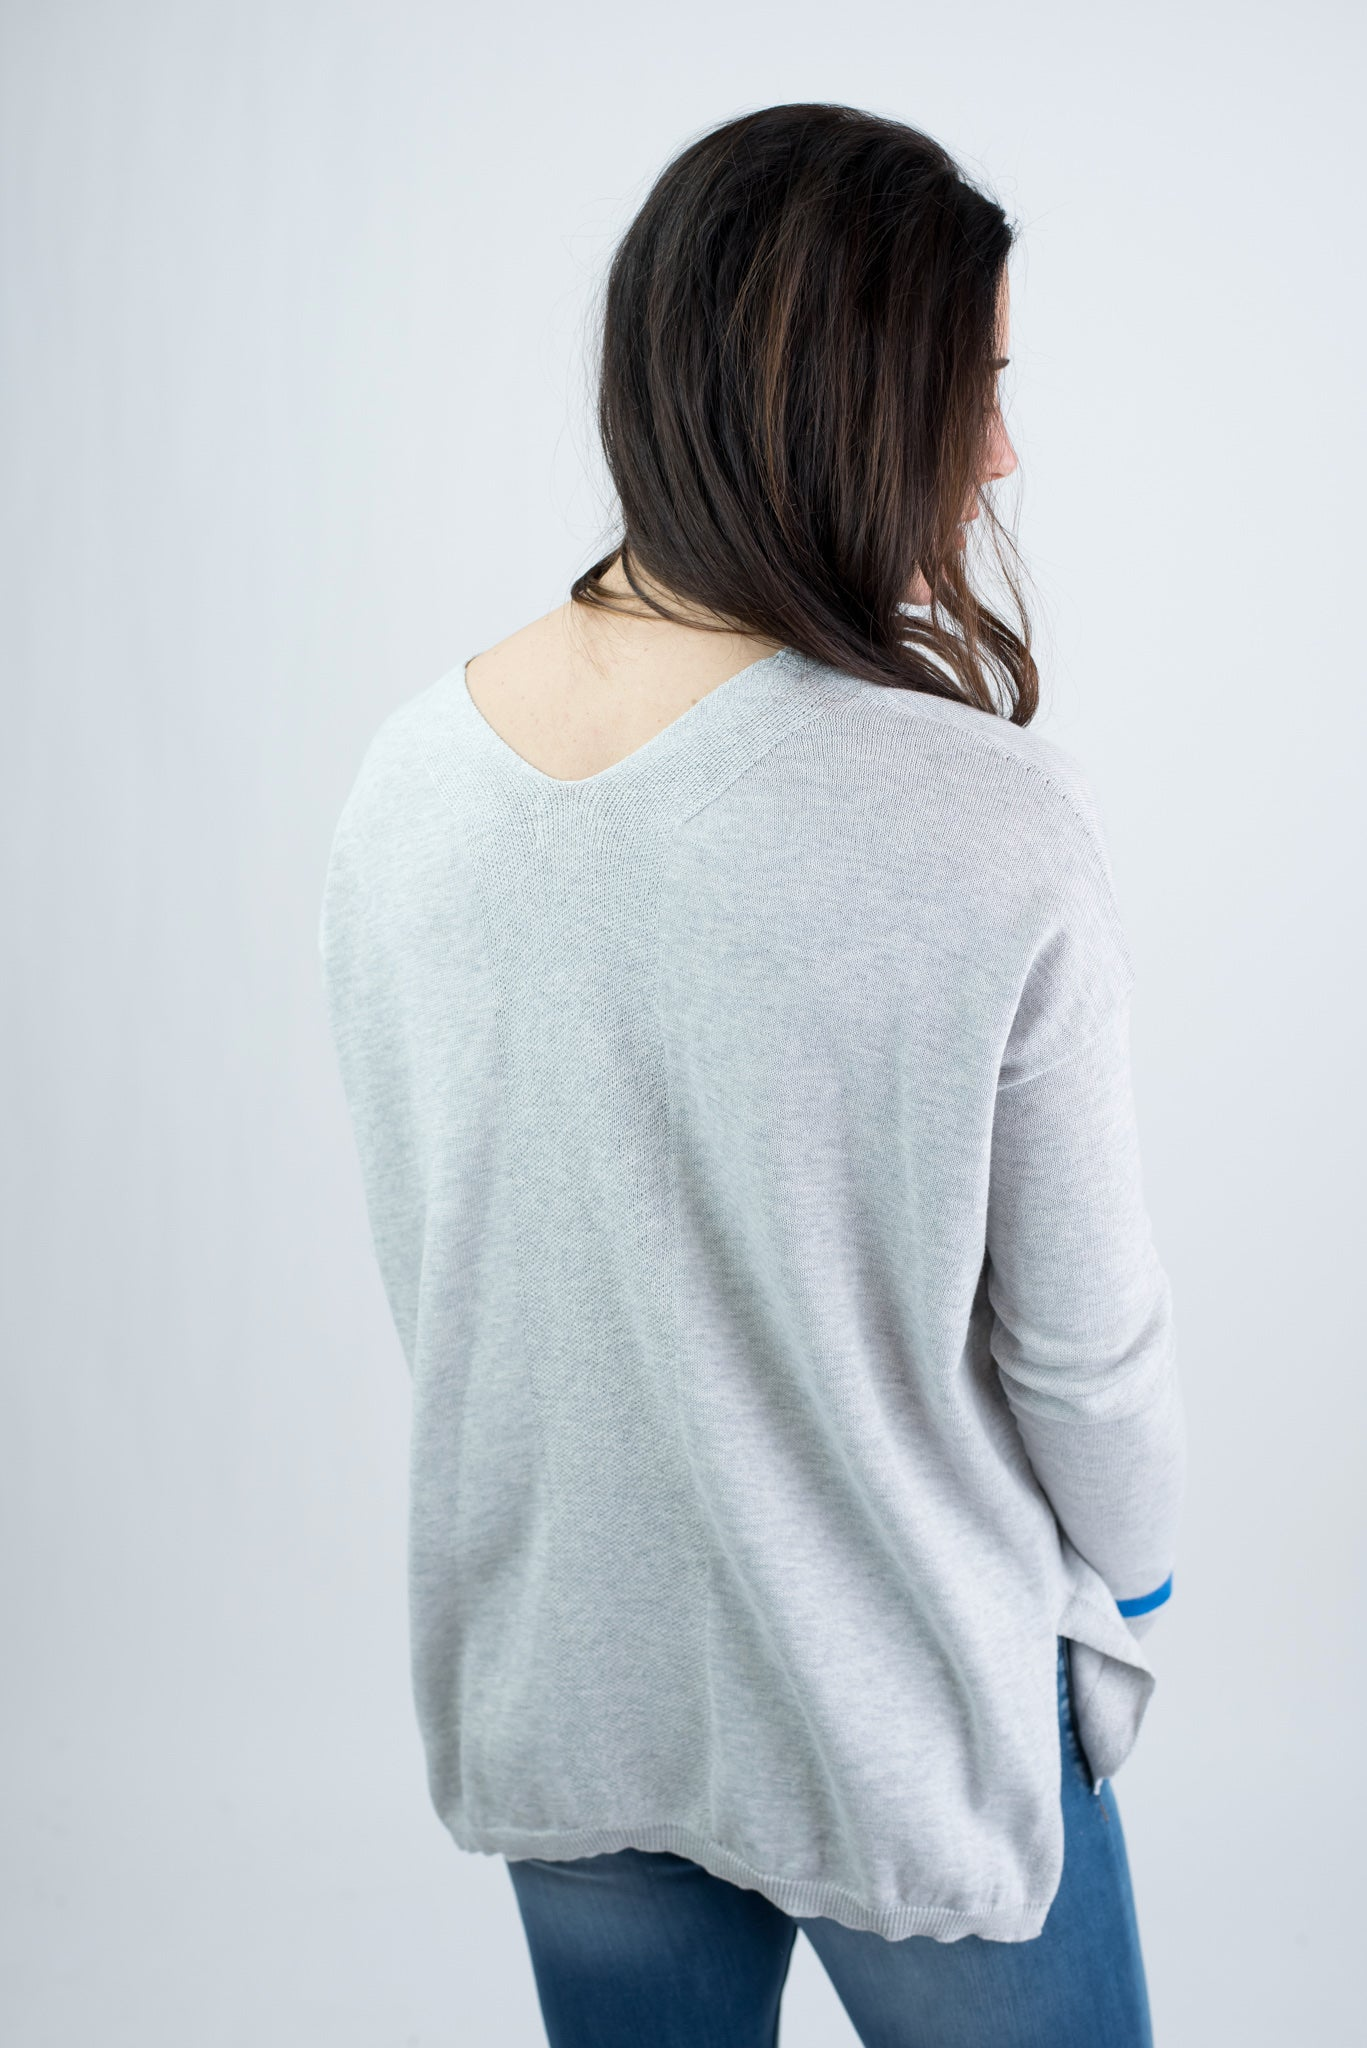 By My Side Heather Grey Sweater With Blue Cuff